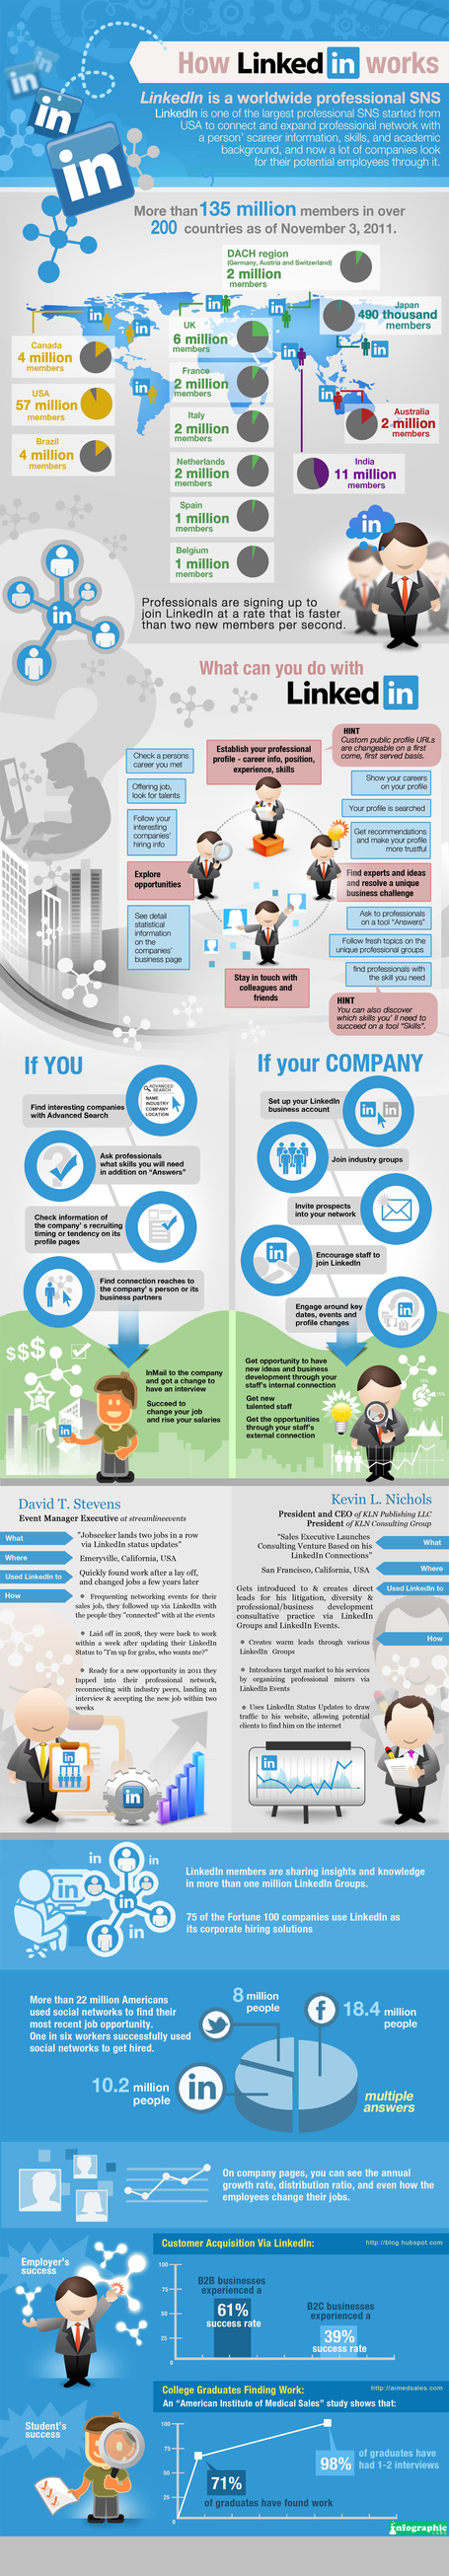 "How to use LinkedIn to Grow Individual Business [Infographic] | Free Download Buzz | ""#Google+, +1, Facebook, Twitter, Scoop, Foursquare, Empire Avenue, Klout and more"" 